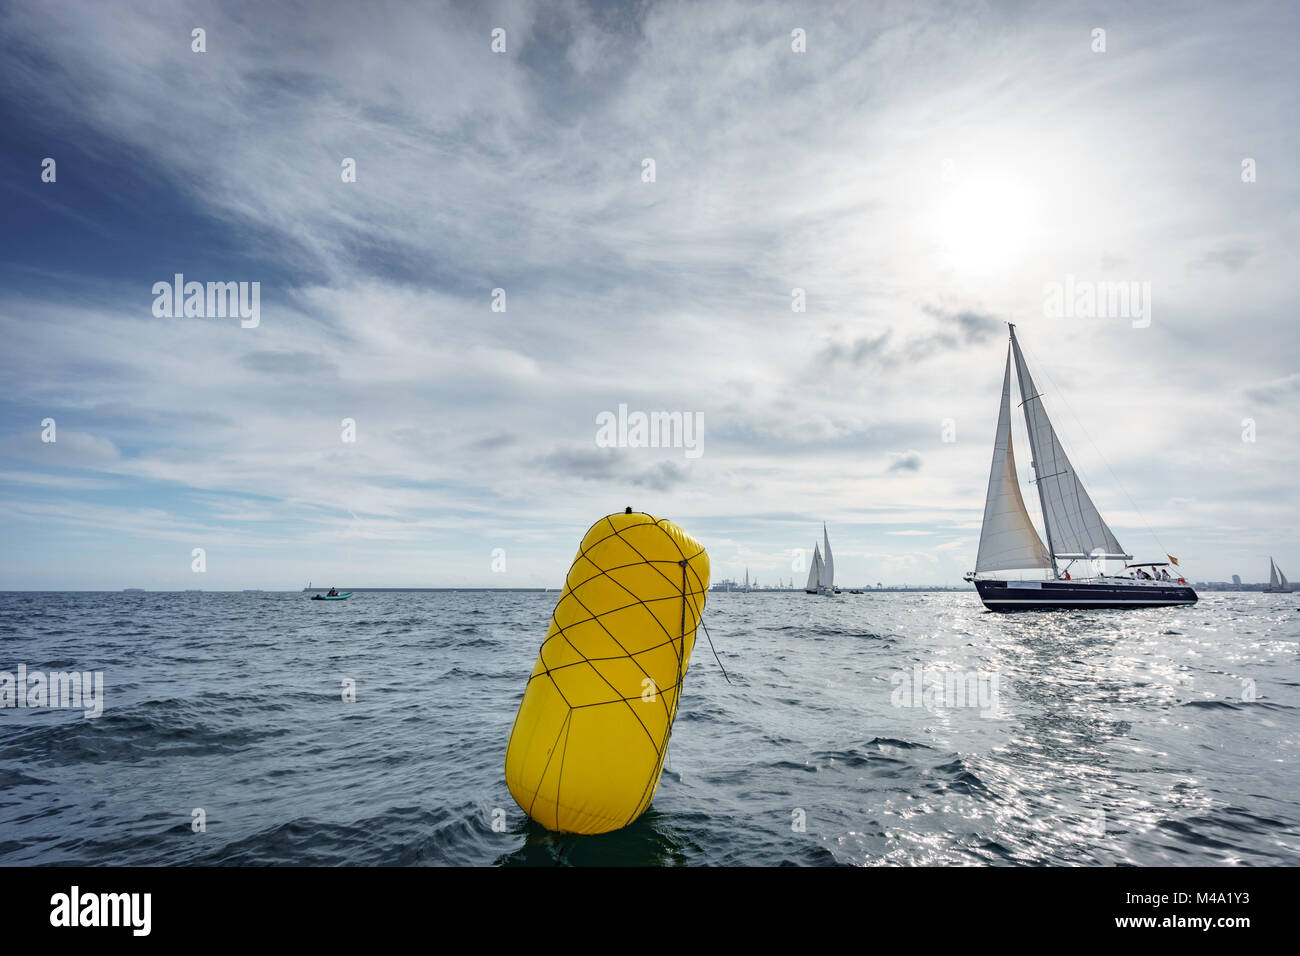 Buoy and sailing boat in the sea - Stock Image